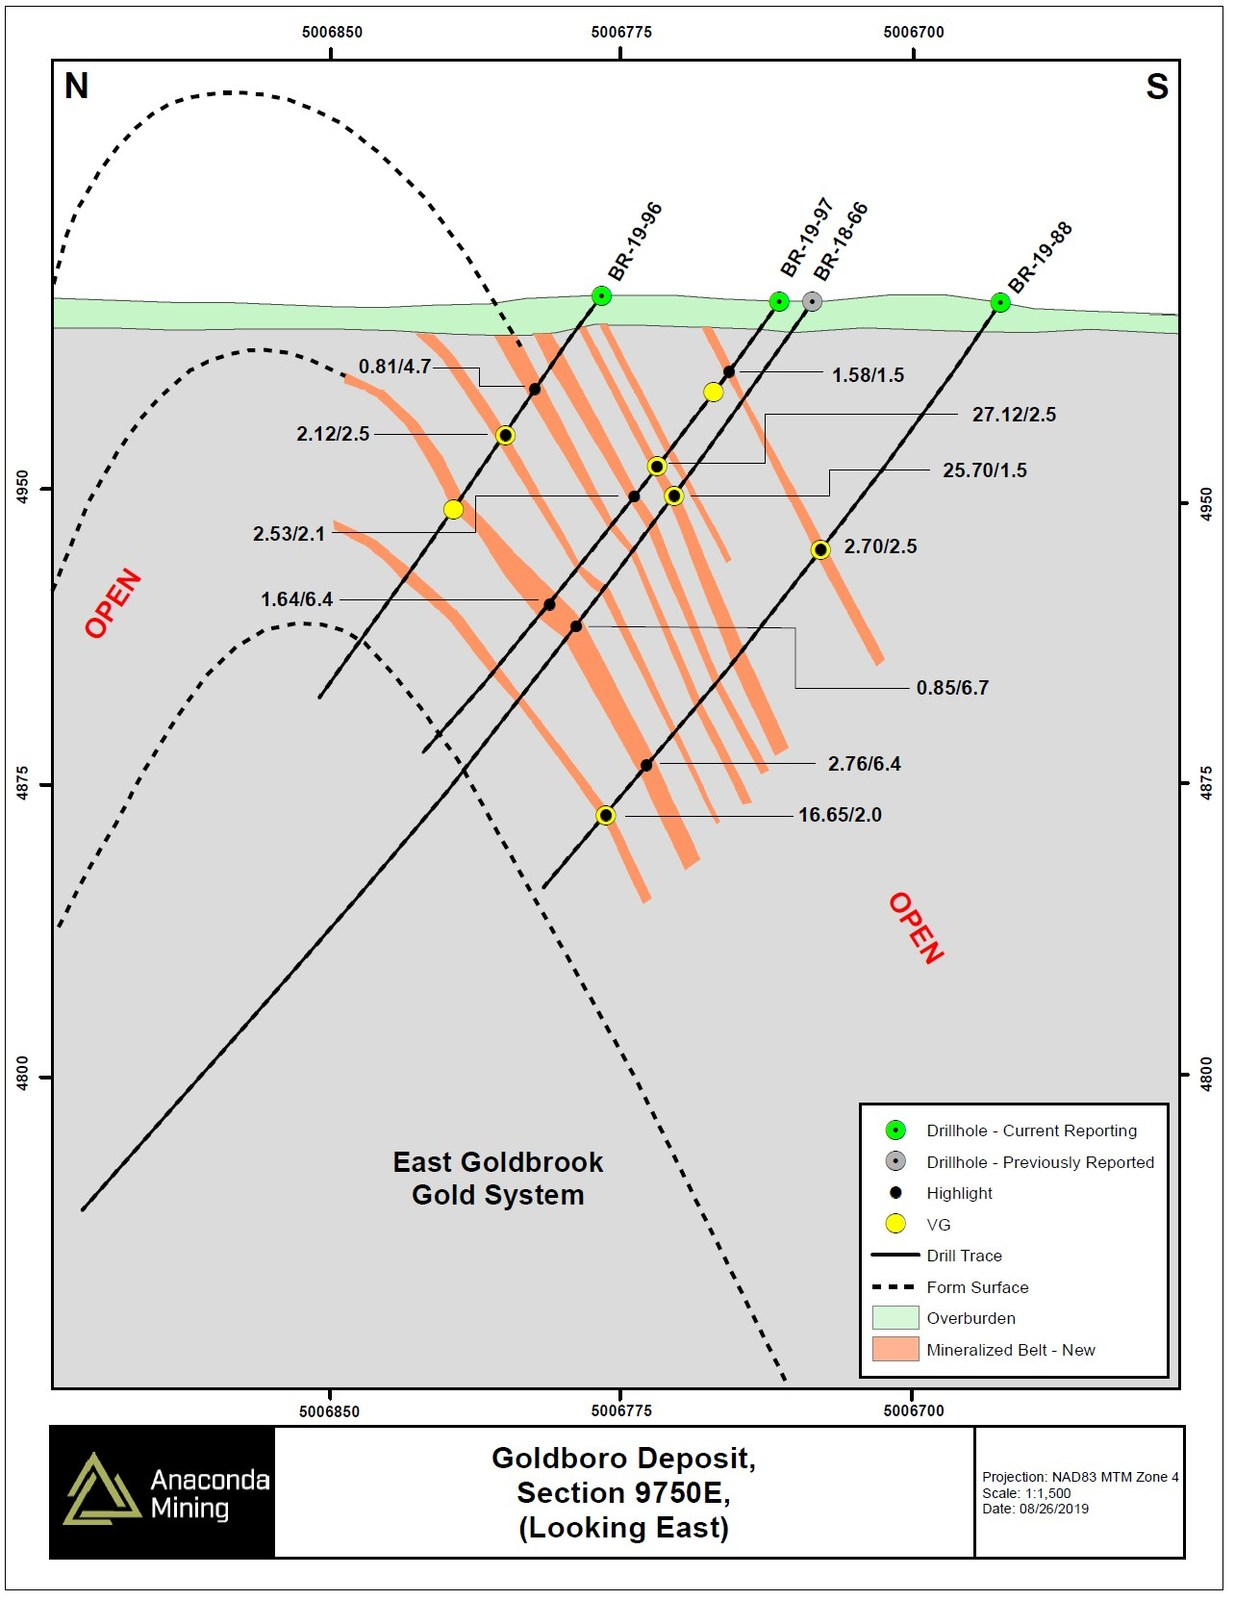 Exhibit C. North – South oriented Section 9750E through the EG Gold System showing the addition of new mineralized zones of the EG Gold System on the south limb of the Goldboro anticline about which the deposit is centered. The mineralized zones on section 9750E are 200 metres east of 9550E, the previous limit of geological modelling within the Goldboro Deposit. Mineralization has now been extended 375 metres east of section 9550E. Hole BR-19-97 intersected 24.12 g/t gold over 2.5 metres and was contiguous with the mineralized zone intersected in hole BR-18-66, which included 25.70 g/t gold over 1.5 metres and was reported on February 28, 2019 as a new area of high-grade mineralization.